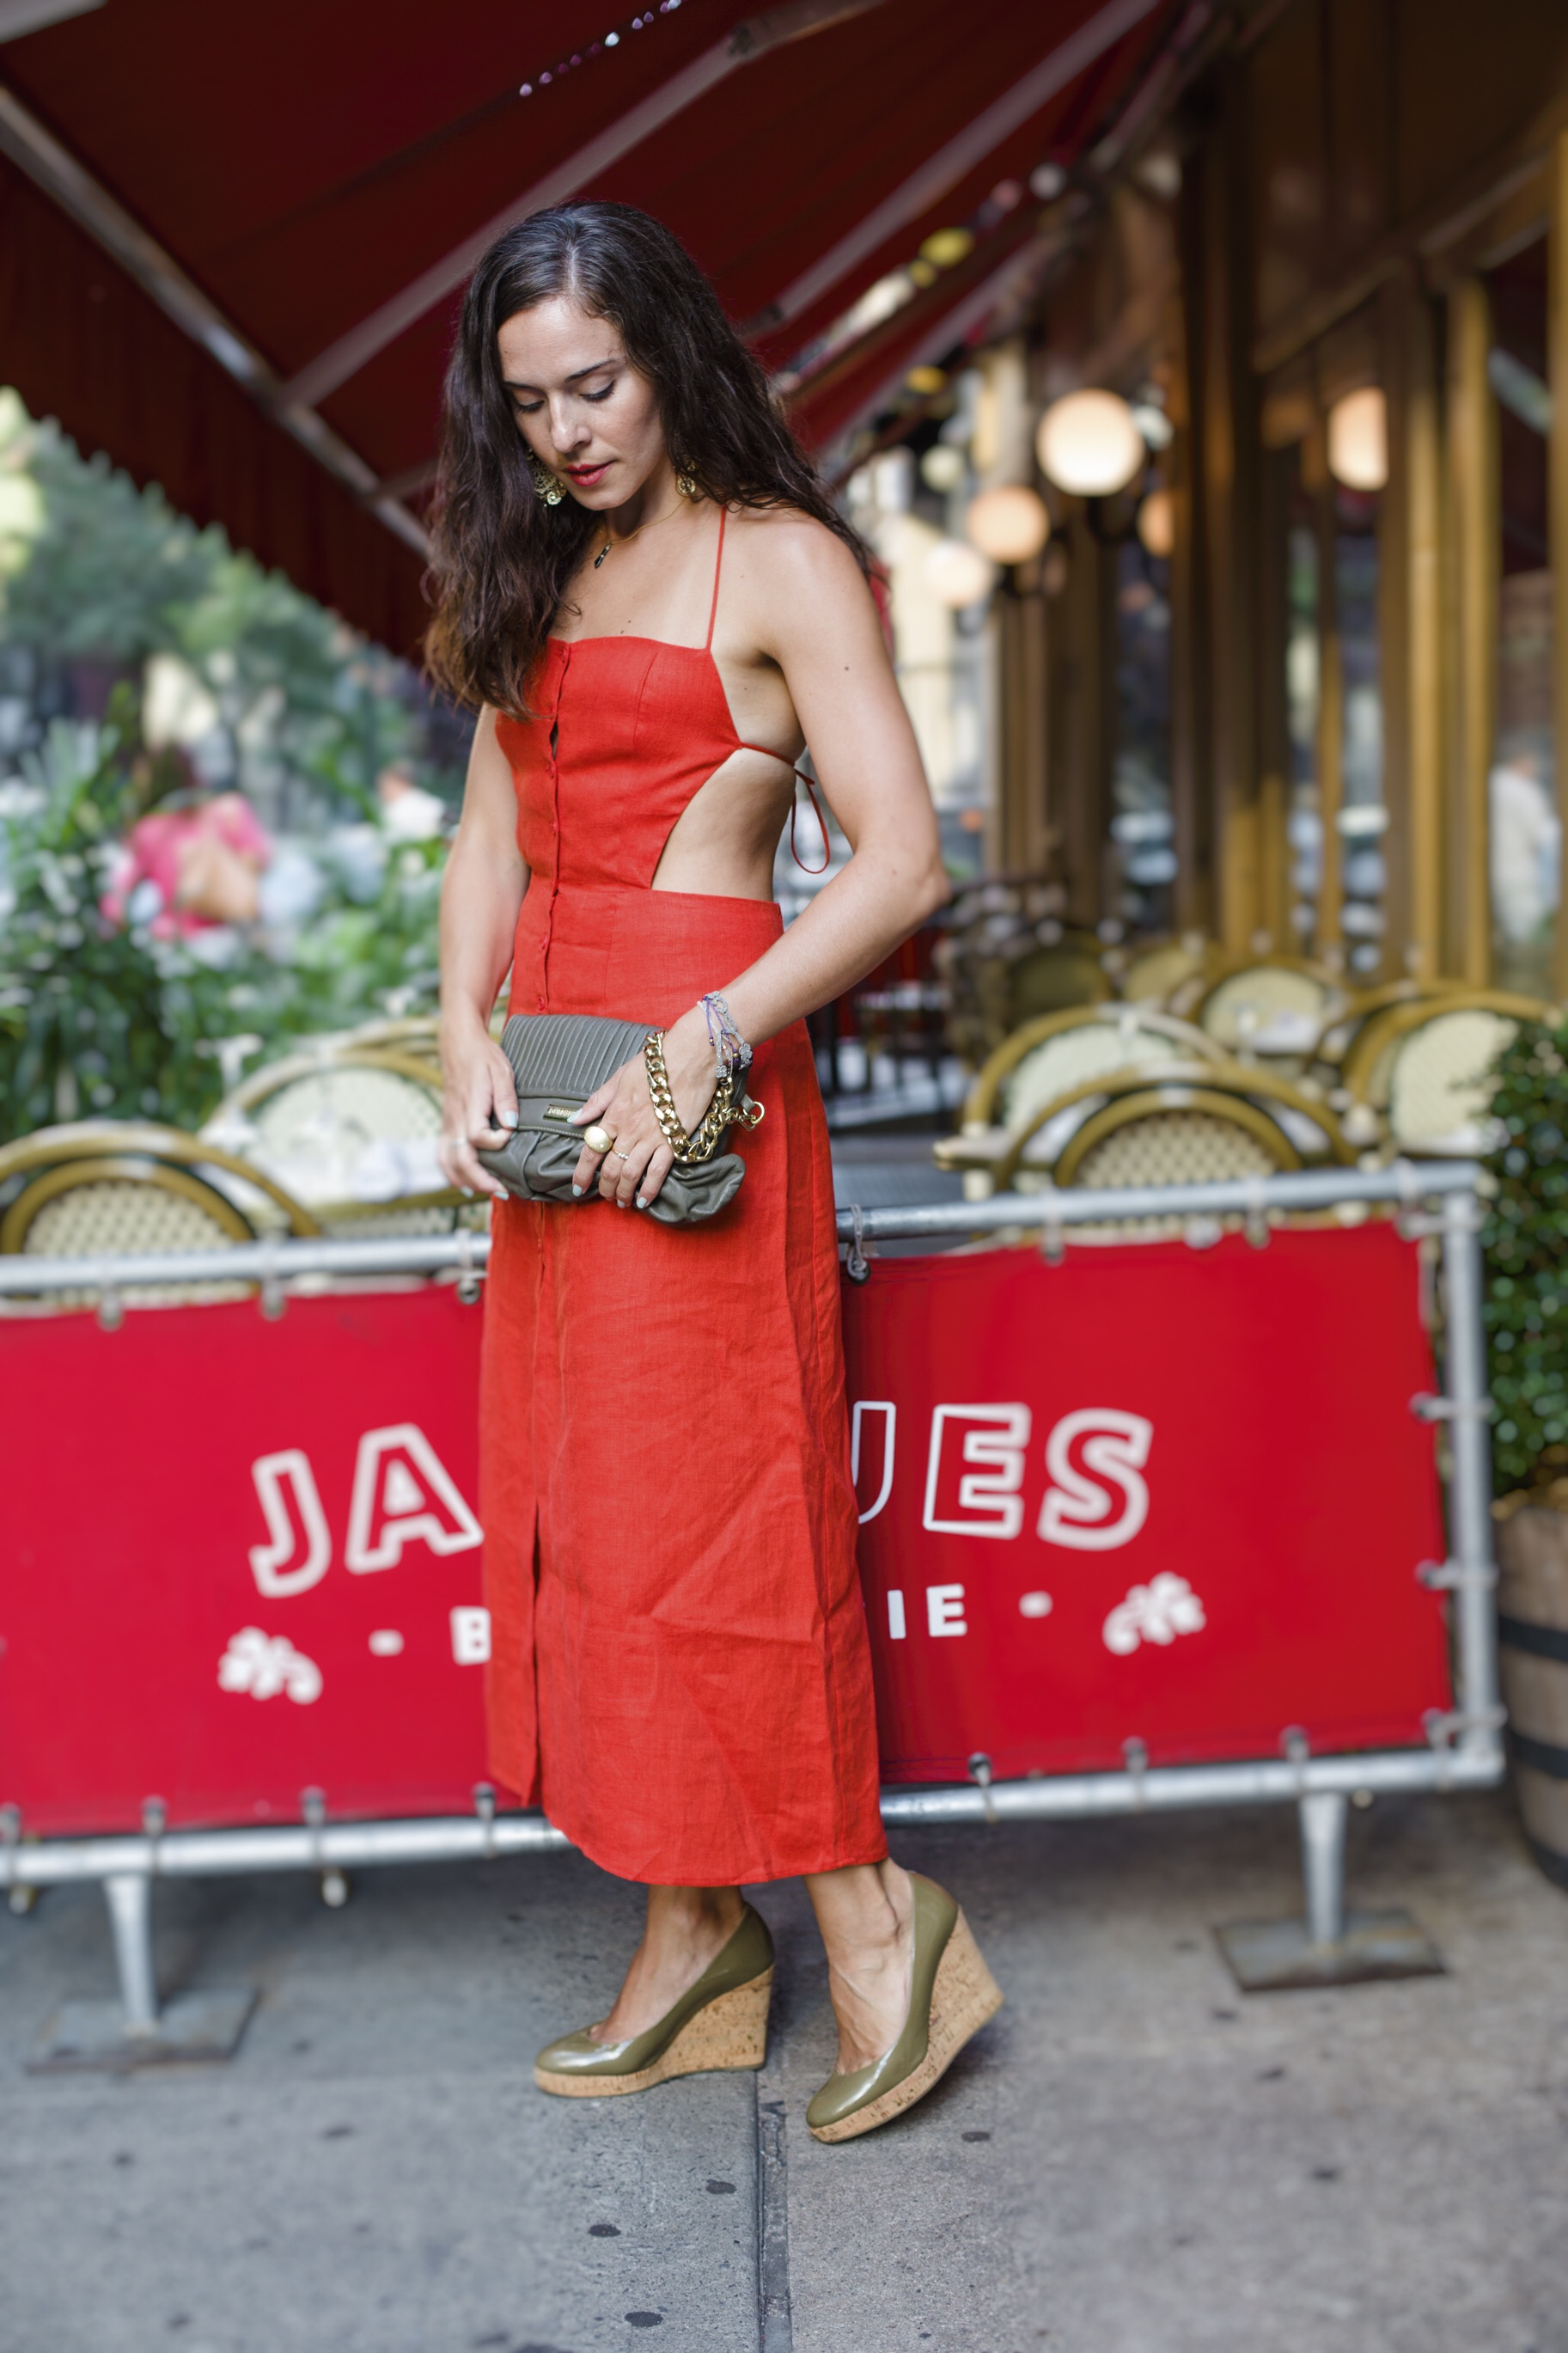 In my new  Reformation  Manon dress, in a coral red. With  YSL  army green platforms and  DuMond army green clutch with gold wrist chain. Earrings are from a small boutique in Brazil from my last trip there in May. Photography by  Francisco Graciano .